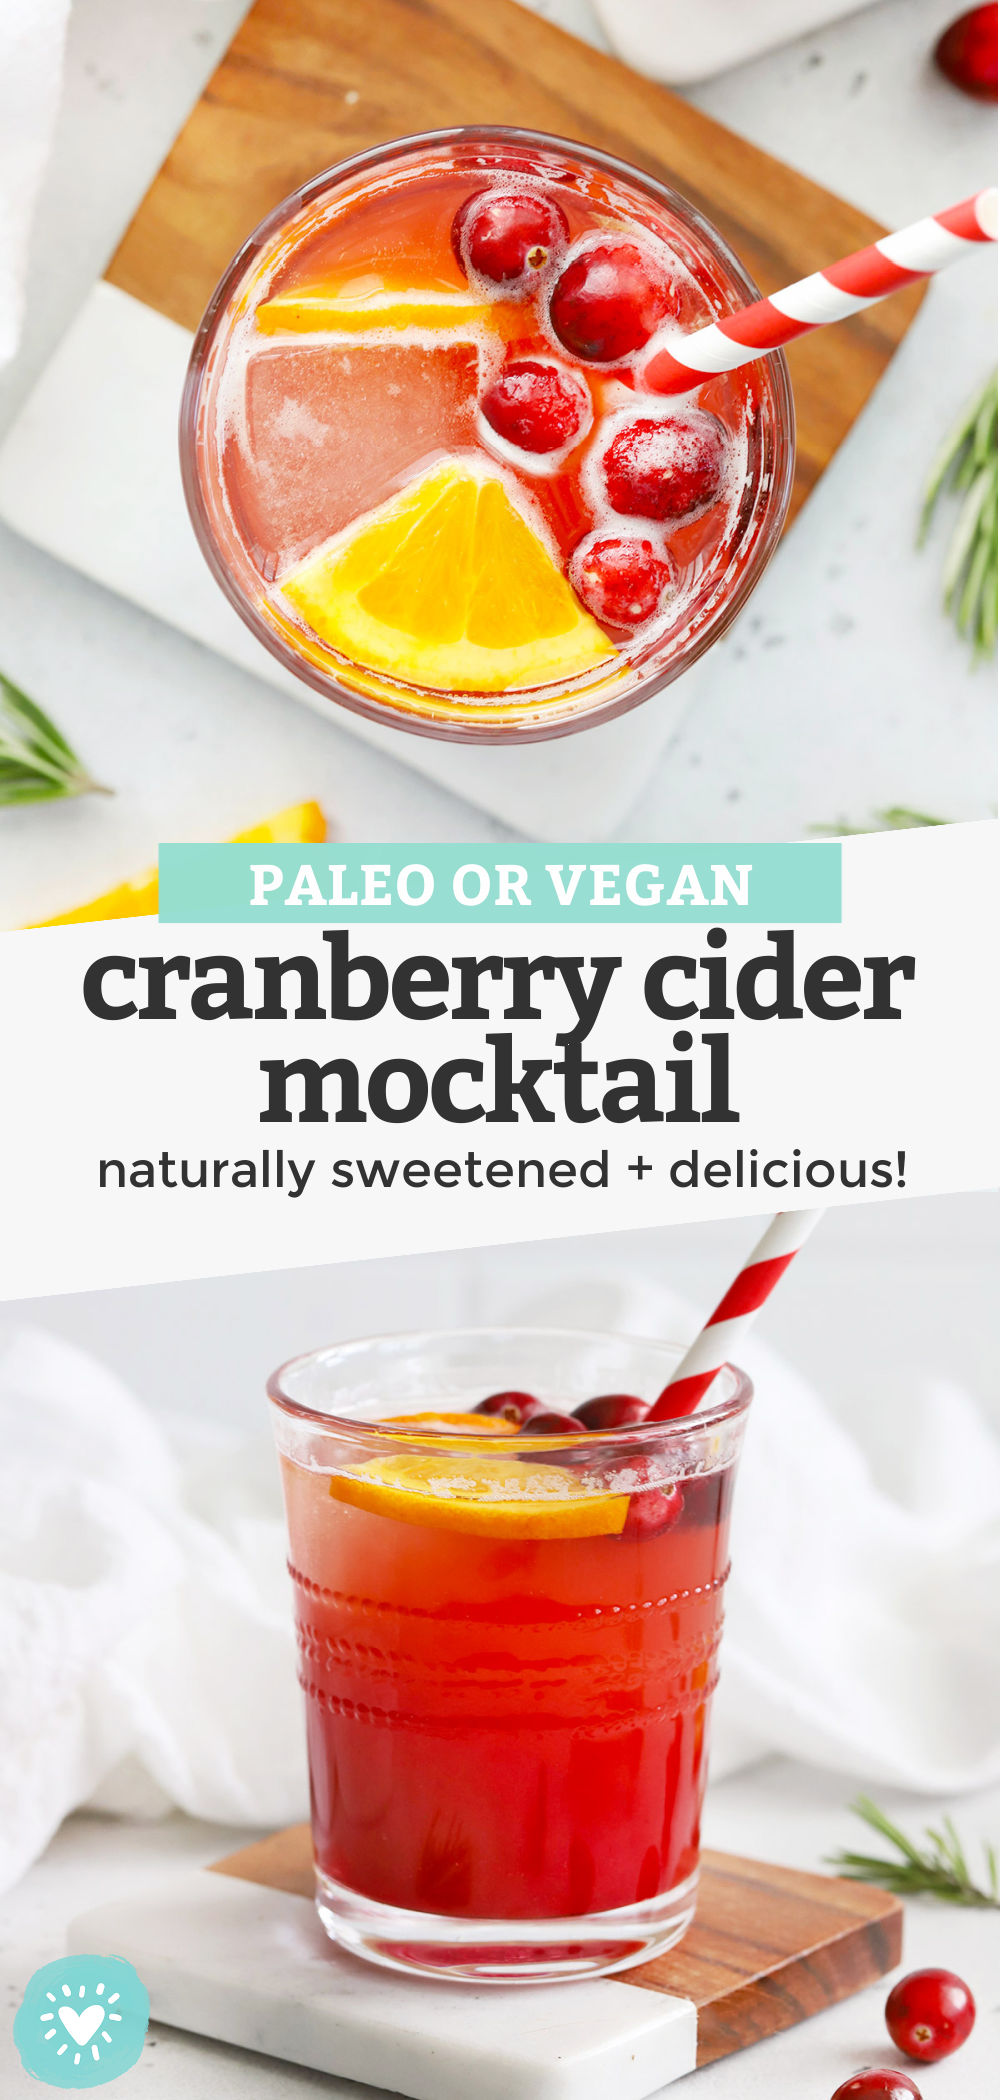 Cranberry Cider Mocktail - This naturally-sweetened fall mocktail recipe is perfect for your holiday table or holiday parties! Make just one or two glasses, or a whole pitcher to enjoy! (Paleo + Vegan) // Paleo Mocktail // Non Alcoholic Cranberry Cider Mocktail // Non Alcoholic Cocktail // Cider Mocktail // Cranberry Mocktail // Fall Mocktail // Non Alcoholic Party Drink #thanskgiving #mocktail #paleo #vegan #cranberries